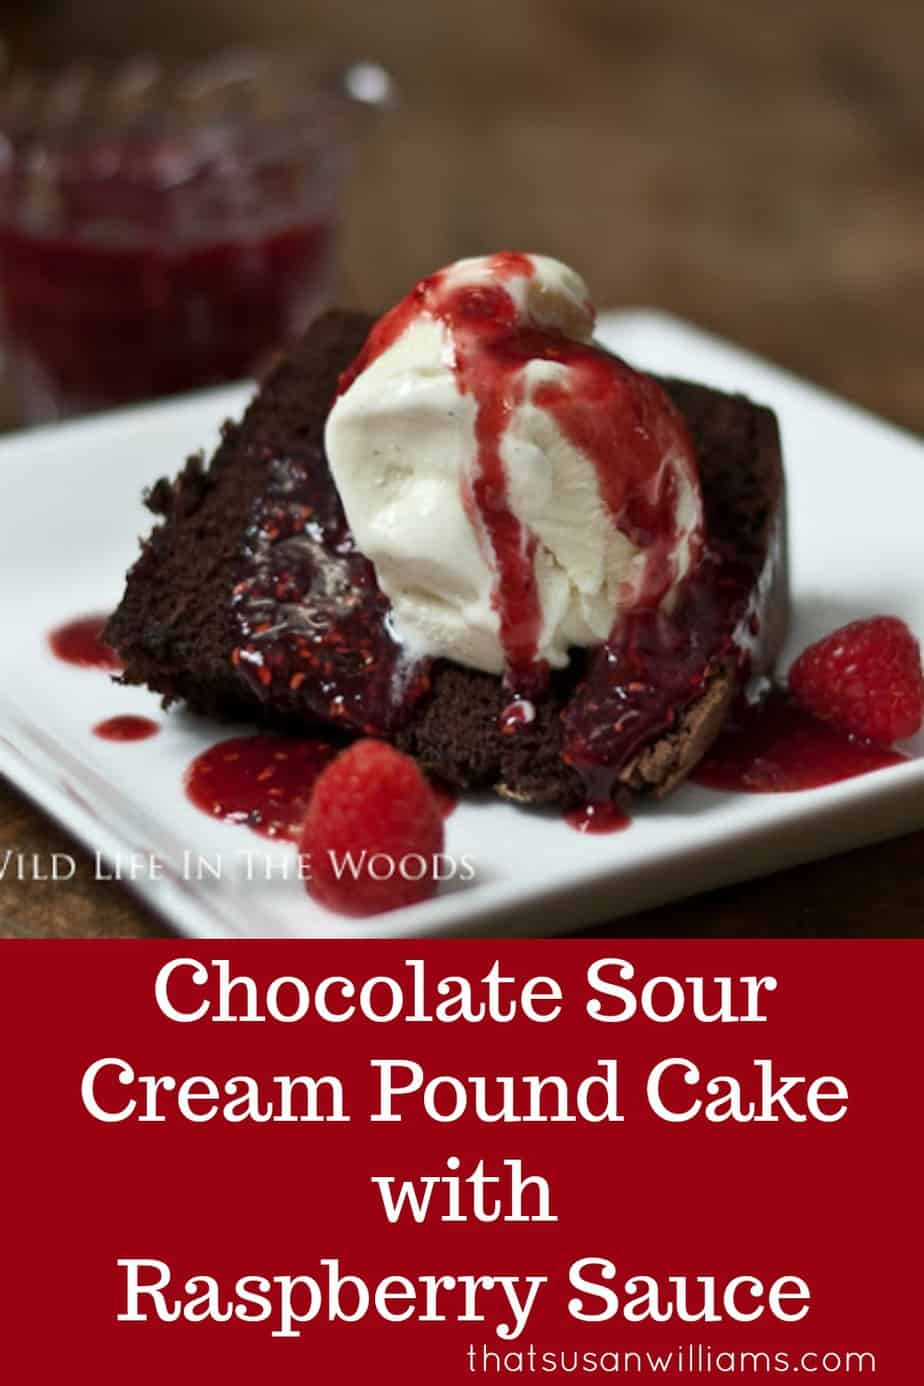 Chocolate Sour Cream Pound Cake with Raspberry Sauce #poundcake #southerncooking #dessert #chocolate #valentinedessert